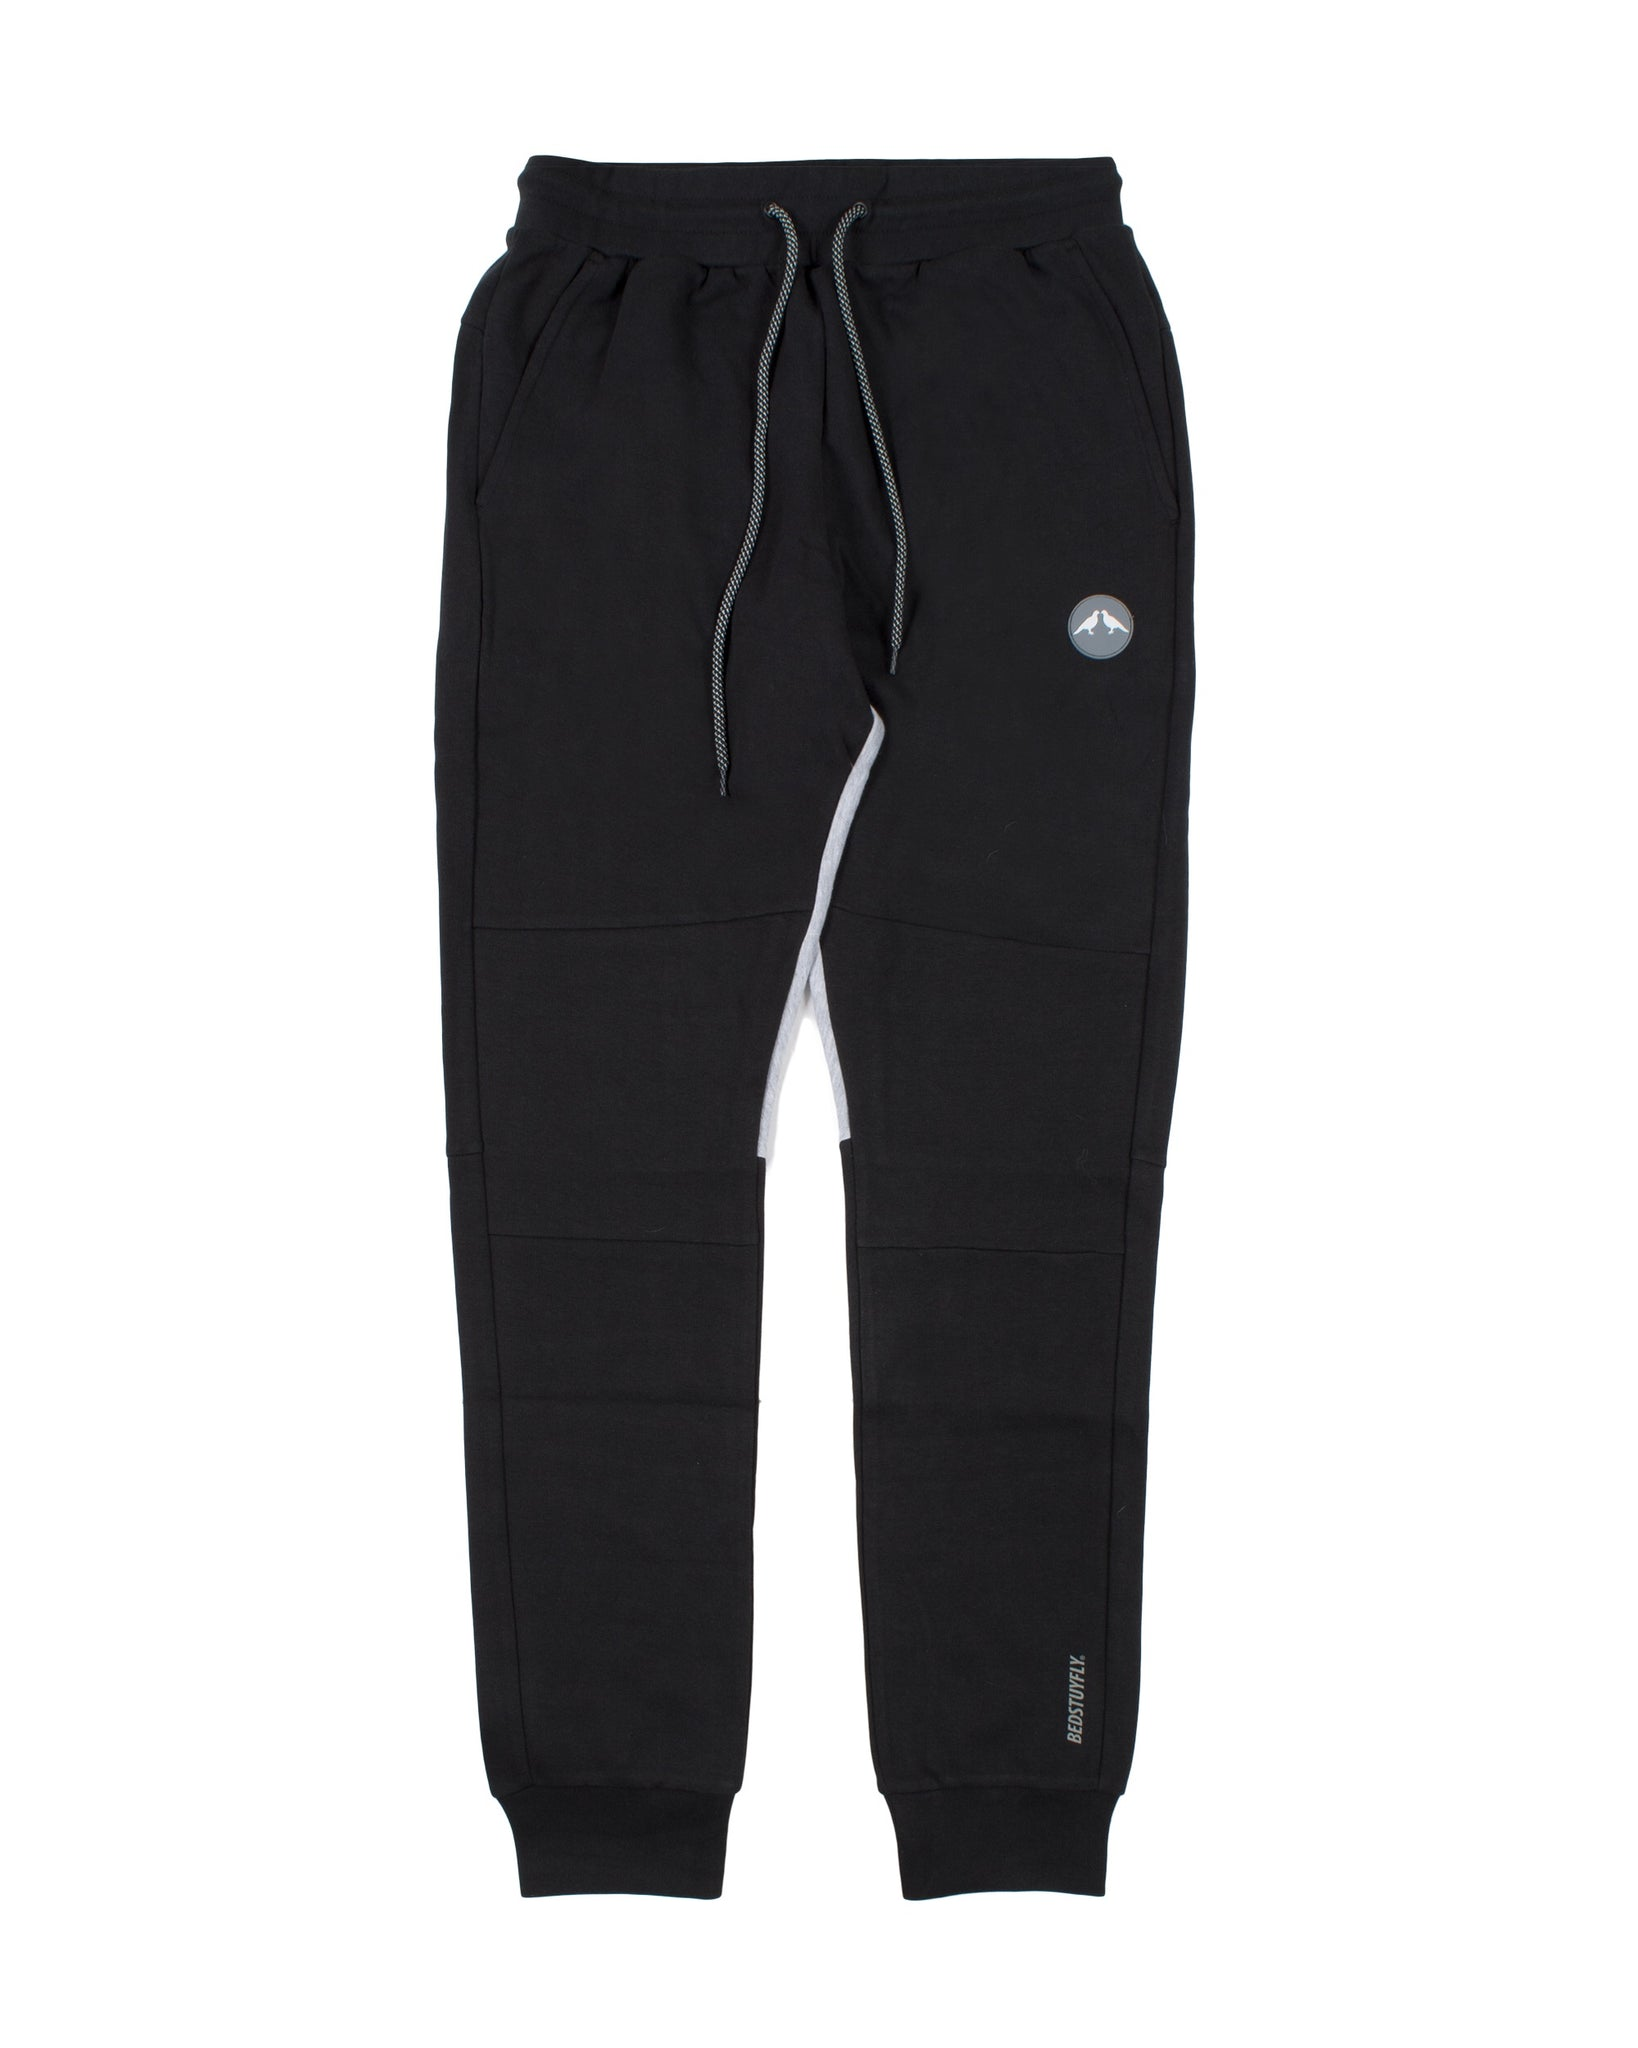 Geo Tech Sweatpants (Black)